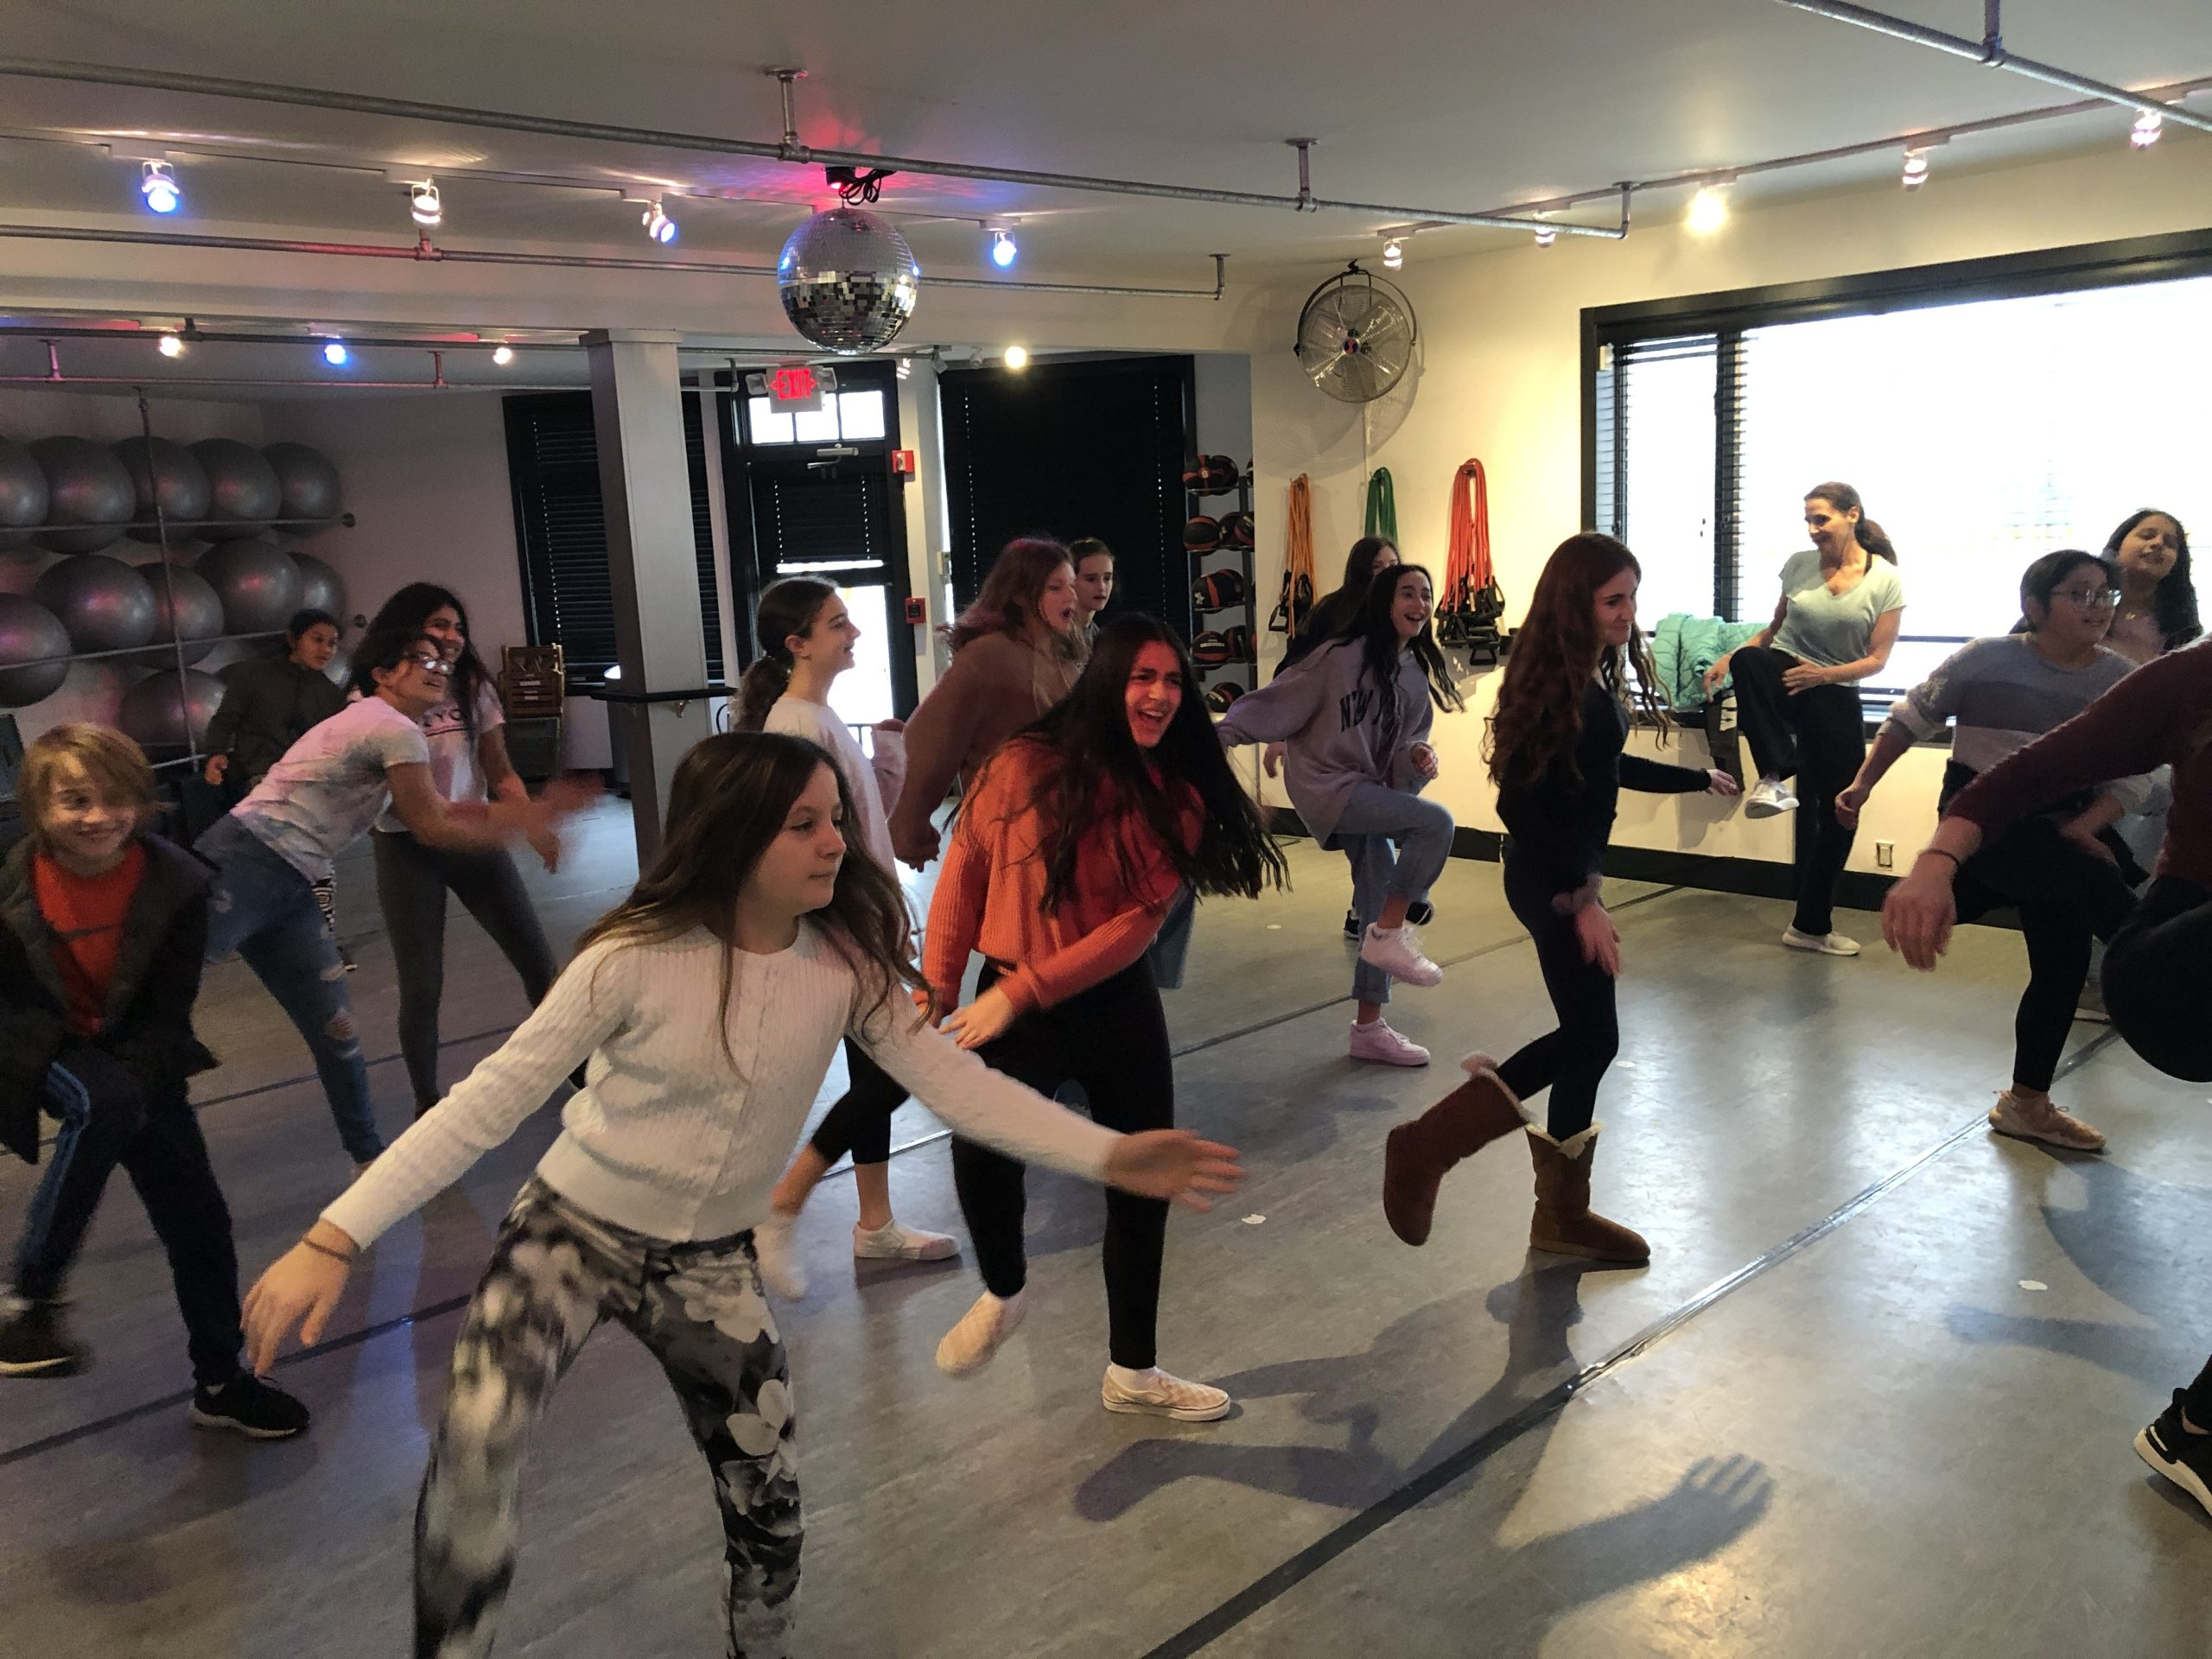 As part of their study of neuroplasticity in PLANT class (Preparing Learners for a New Tomorrow), Pierson Middle School sixth-graders are learning about the positive effects dancing can have on the brain and memory.To gain a firsthand experience, teacher Eileen Caulfield's students recently participated in a dance class at the AKT Studio in East Hampton.